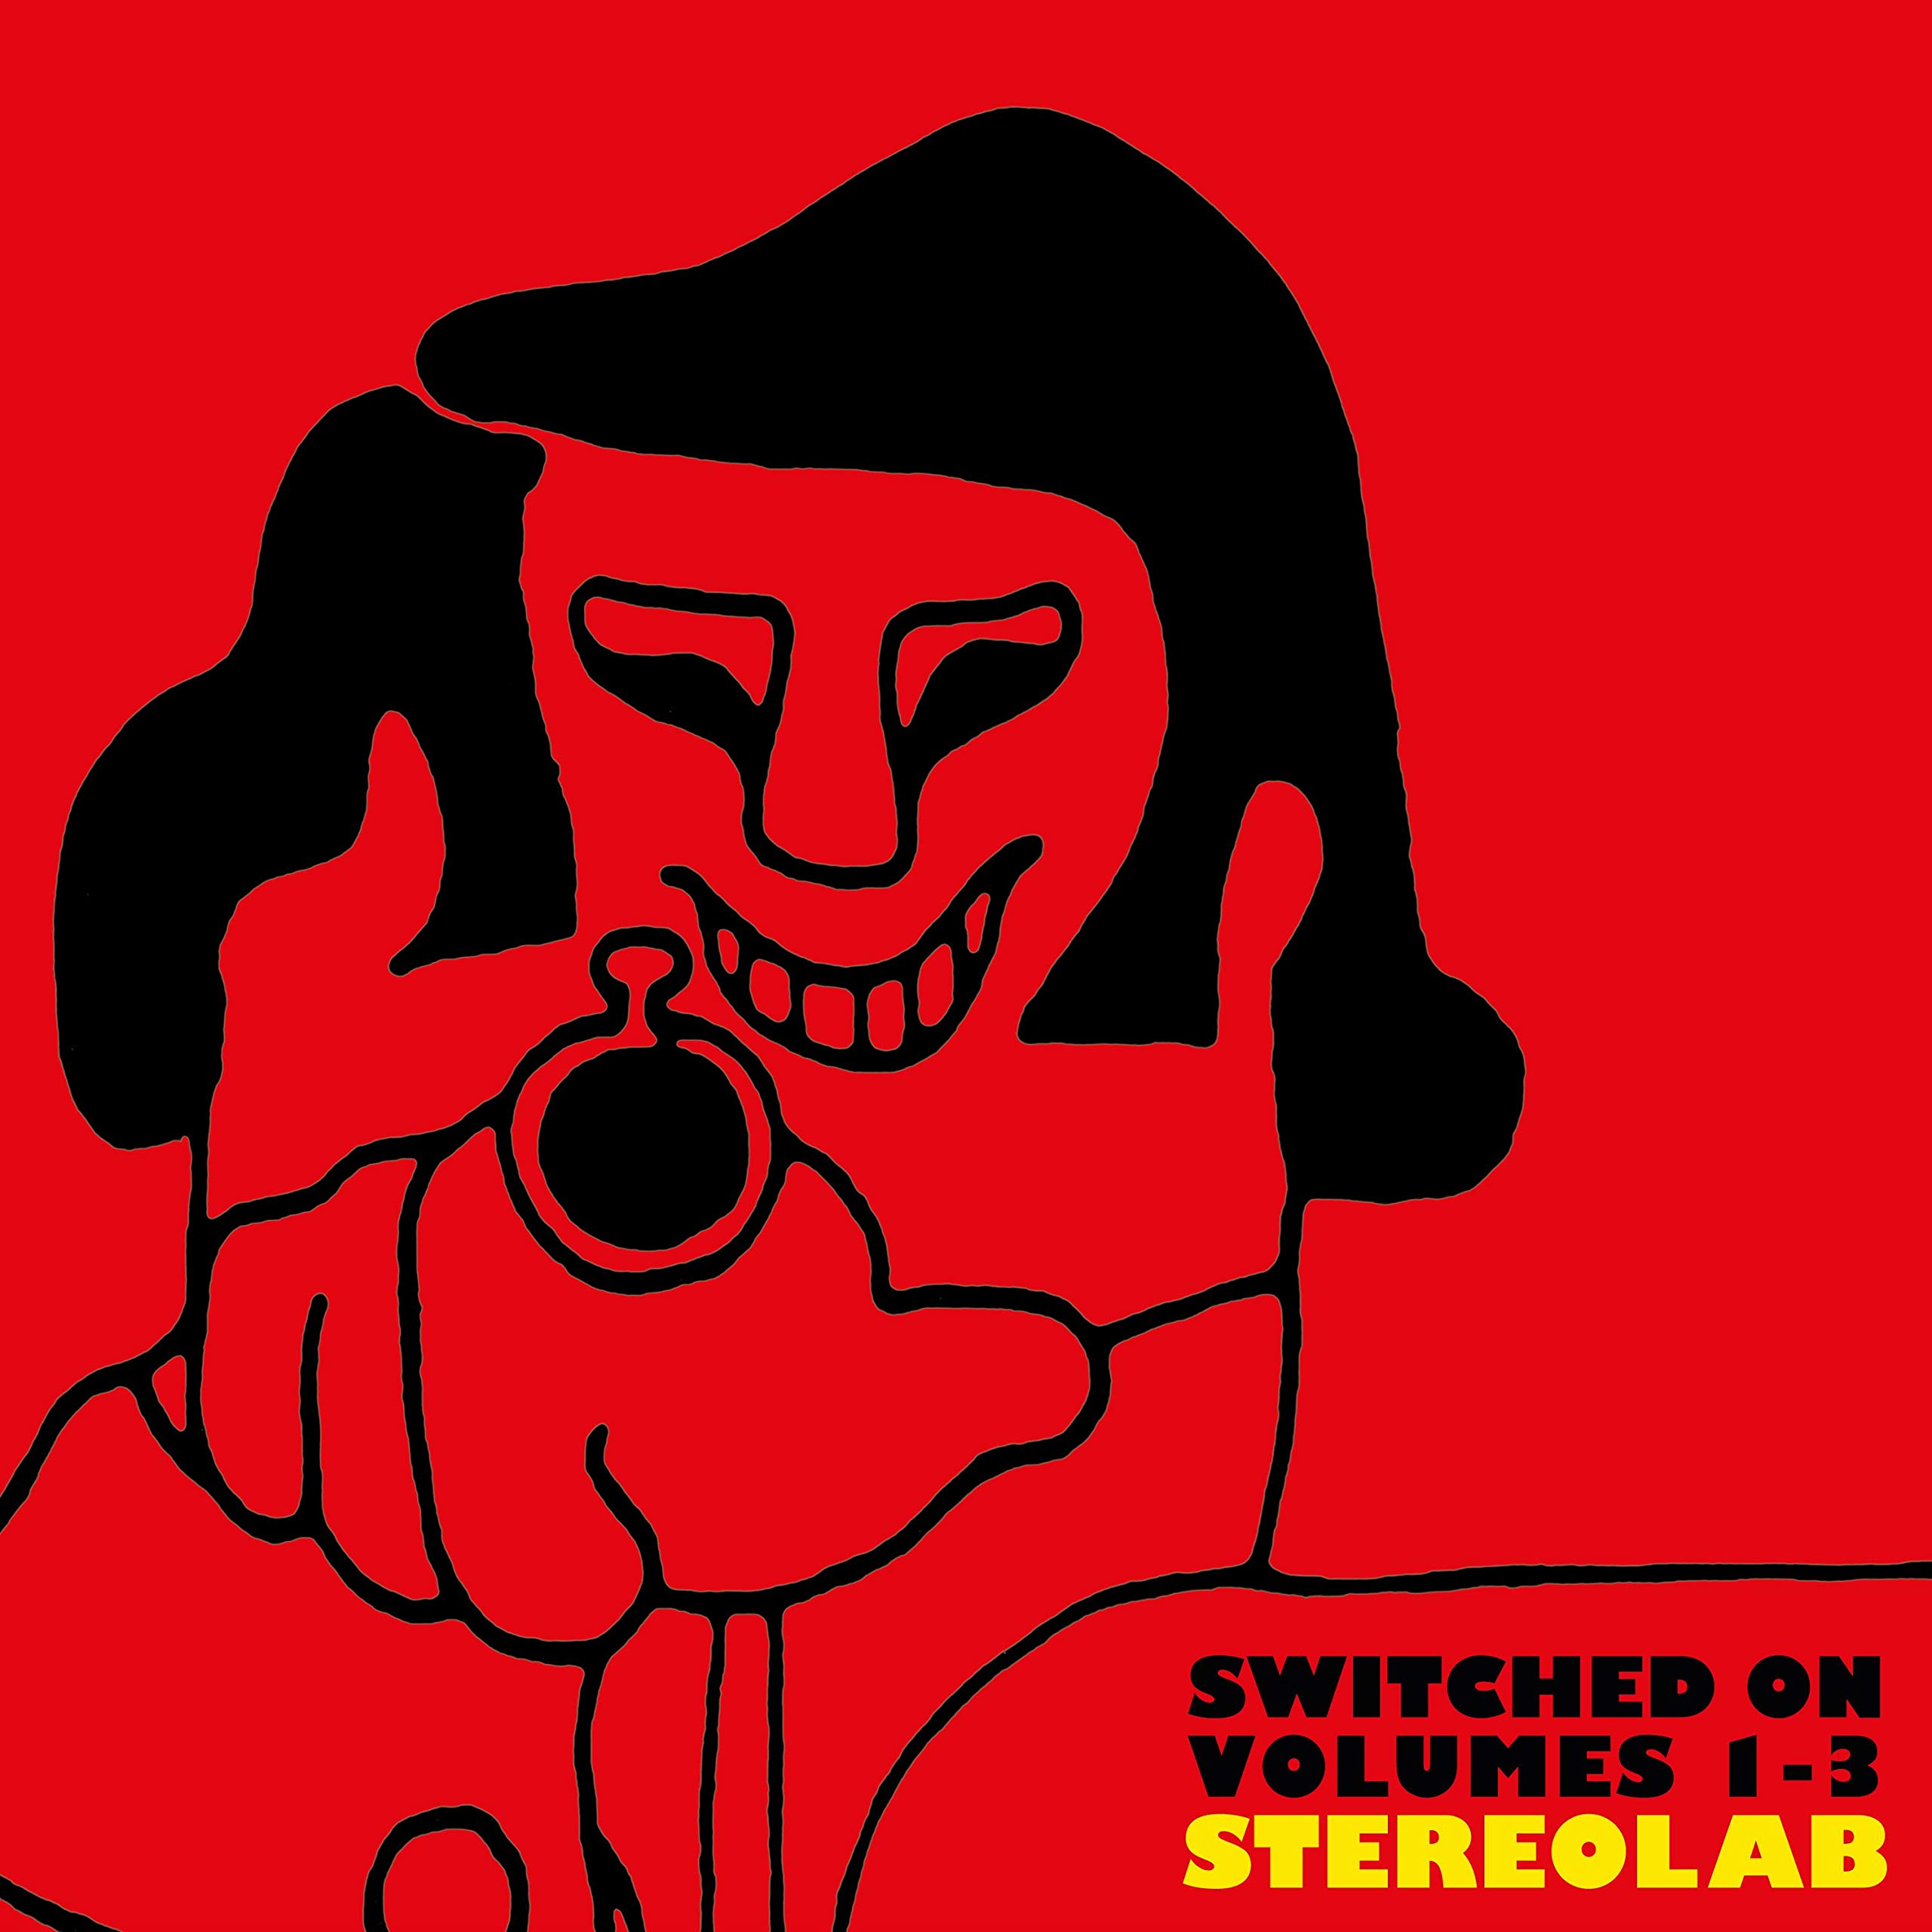 CD : Stereolab - Switched On 1-3 (CD)